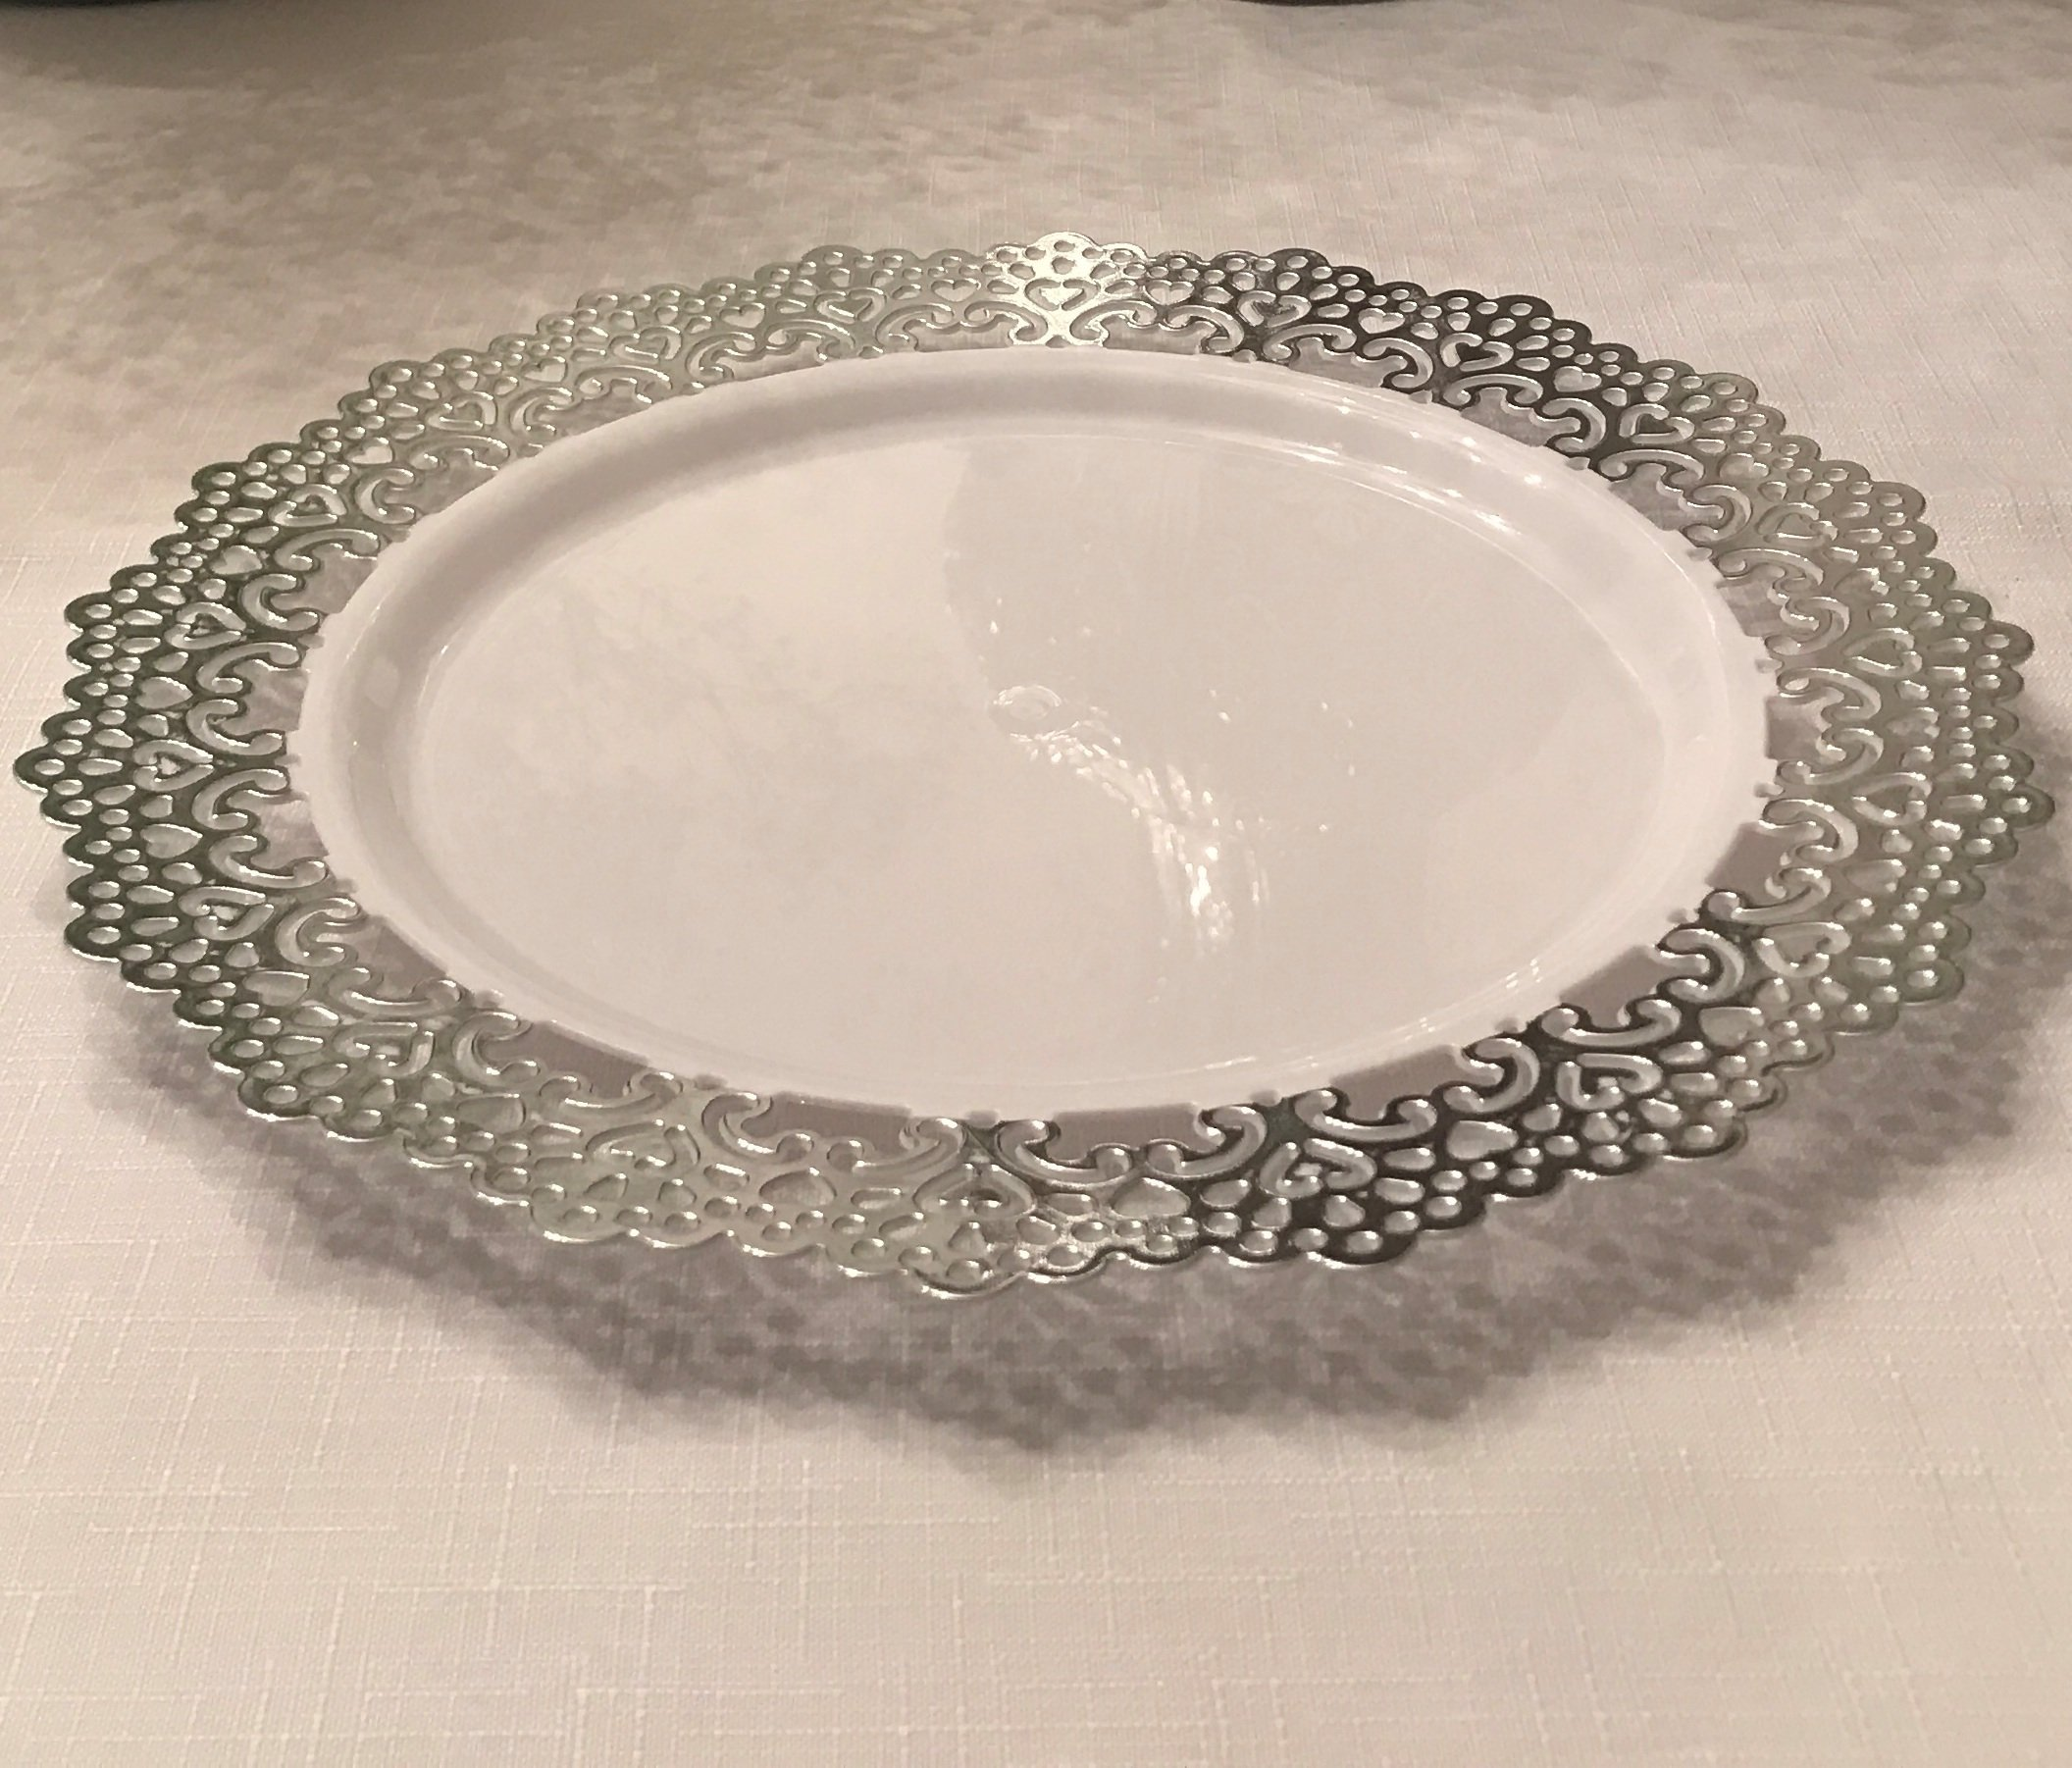 120 Piece Pack - Elegant Disposable Plastic Dinnerware - 9'' inch Buffet/Lunch/Appetizer/Dessert/Salad Party Plates - Silver Lace Trim by PartyPiks (Image #2)